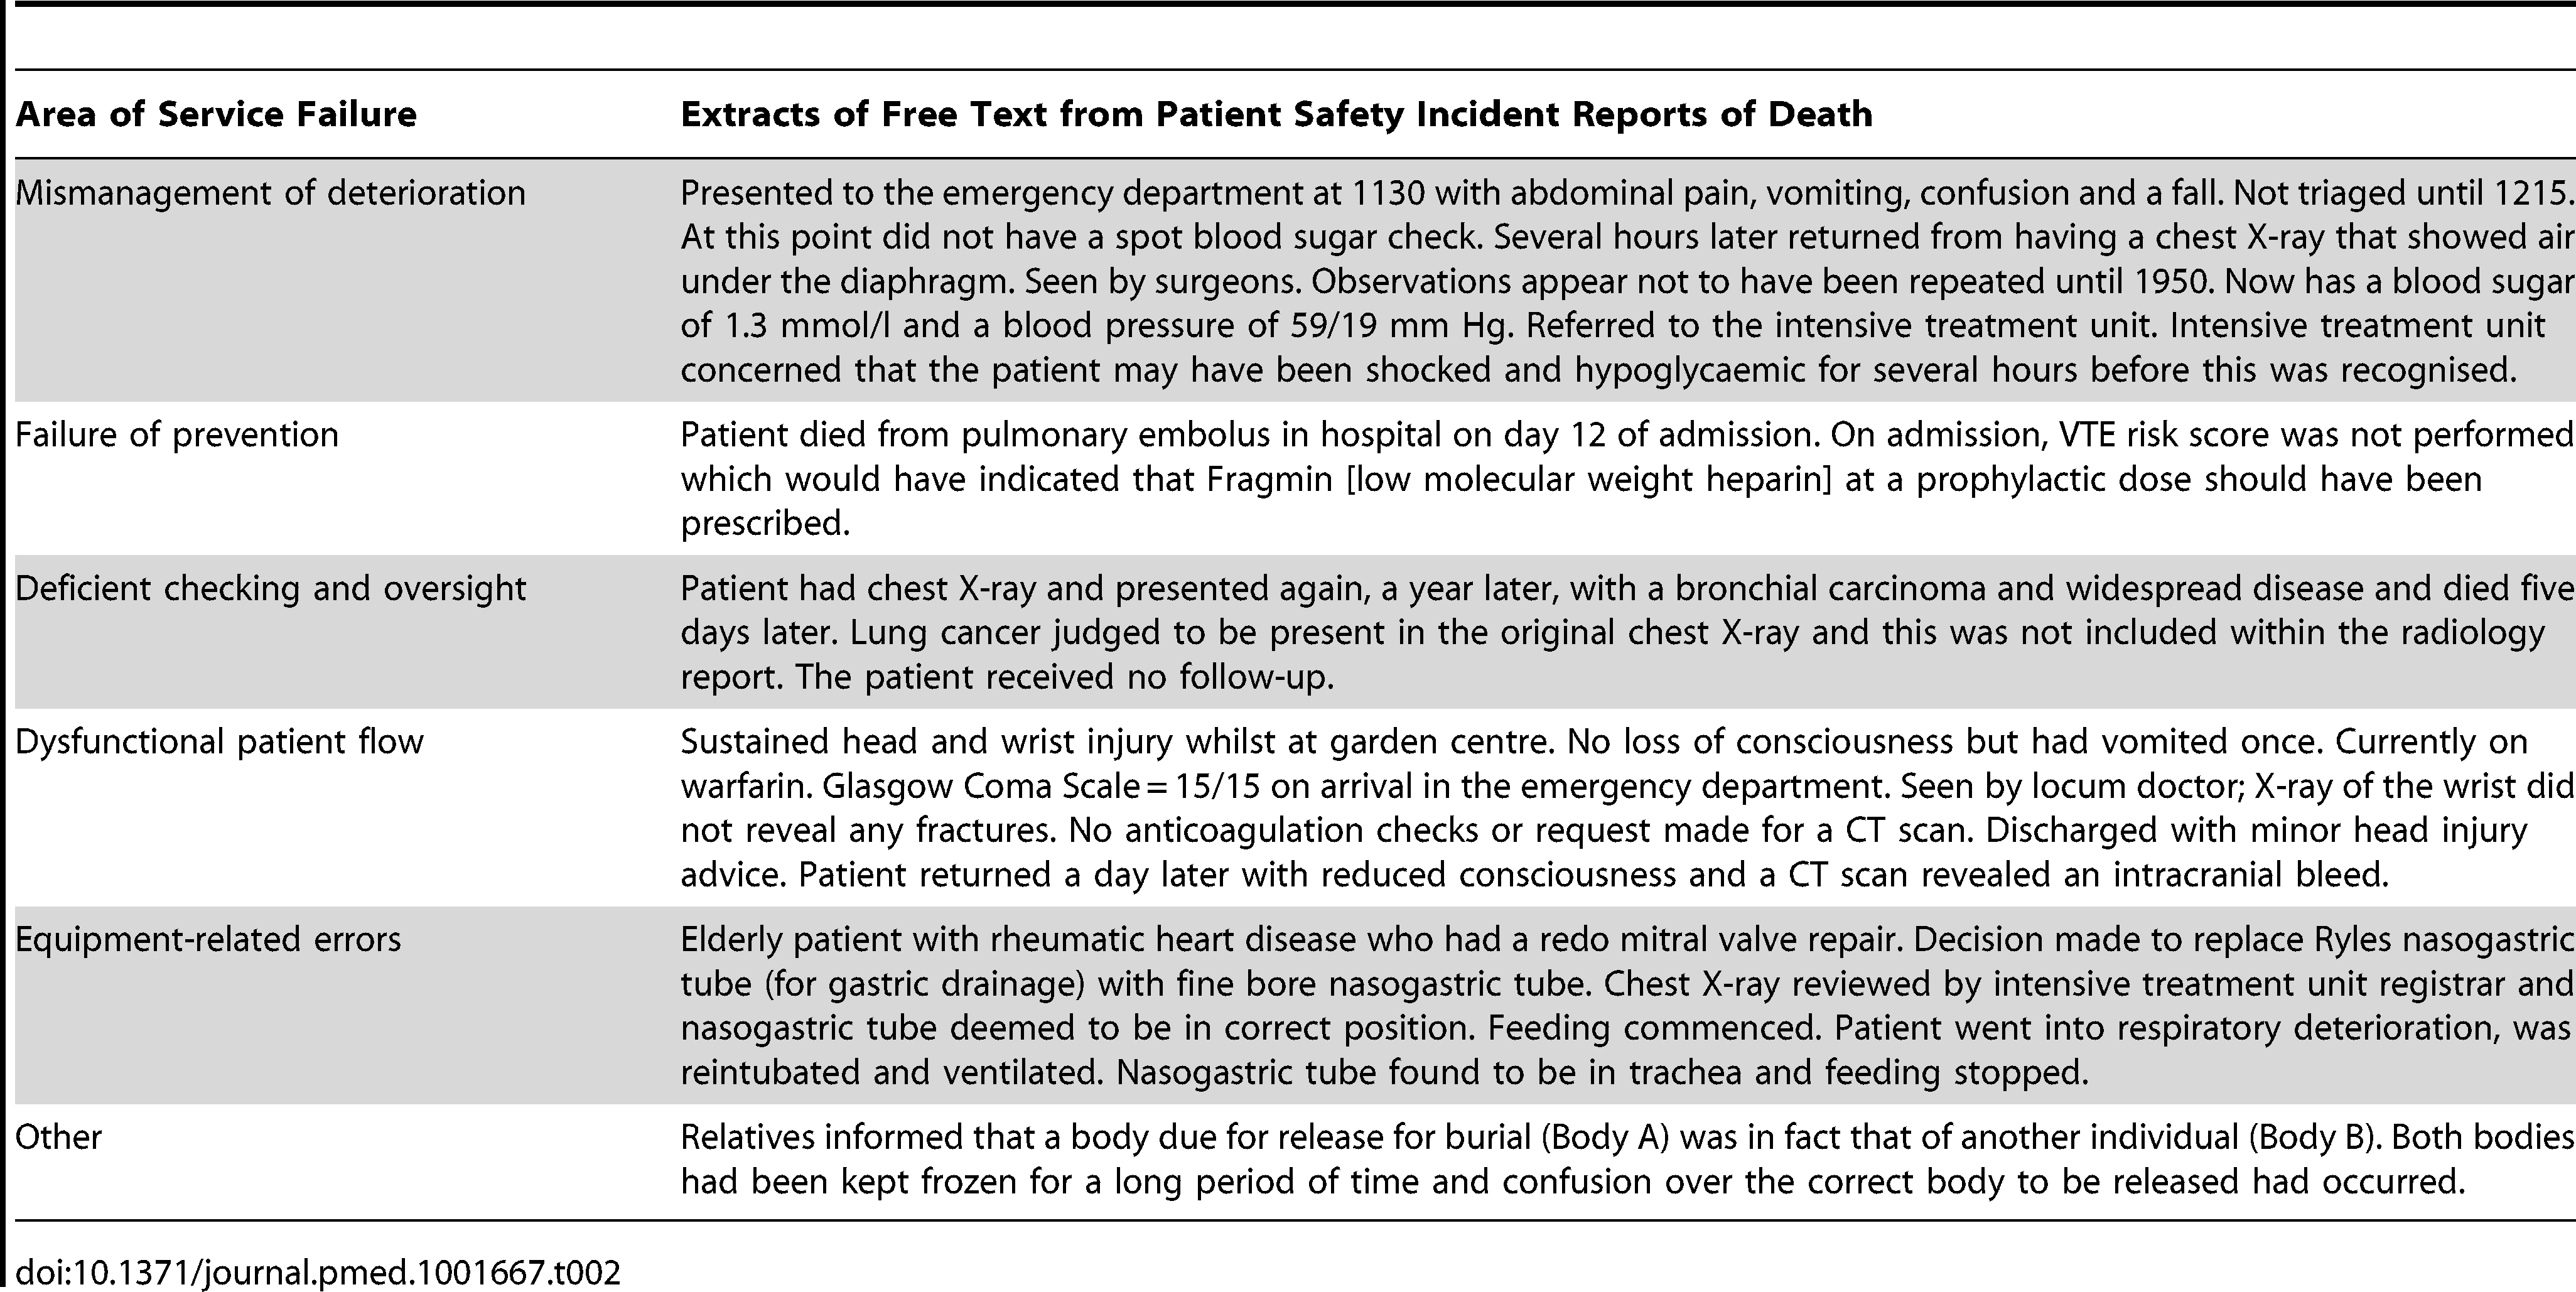 Extracts of free text from patient safety incident reports of death.